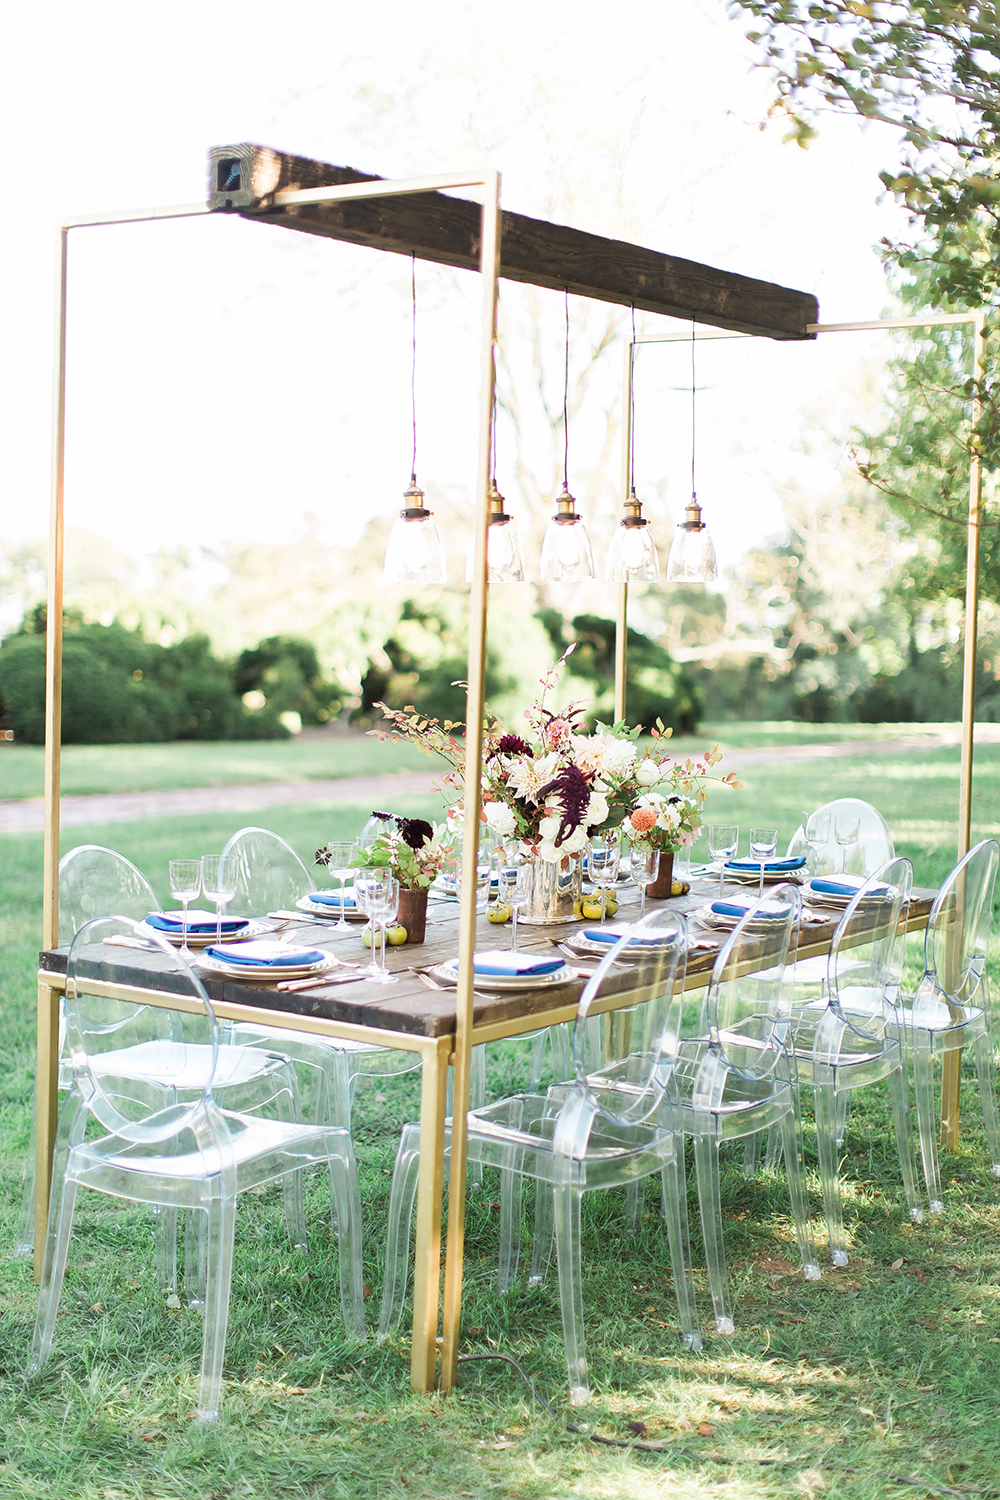 wedding decor - photo by Candice Adelle Photography http://ruffledblog.com/historic-garden-wedding-inspiration